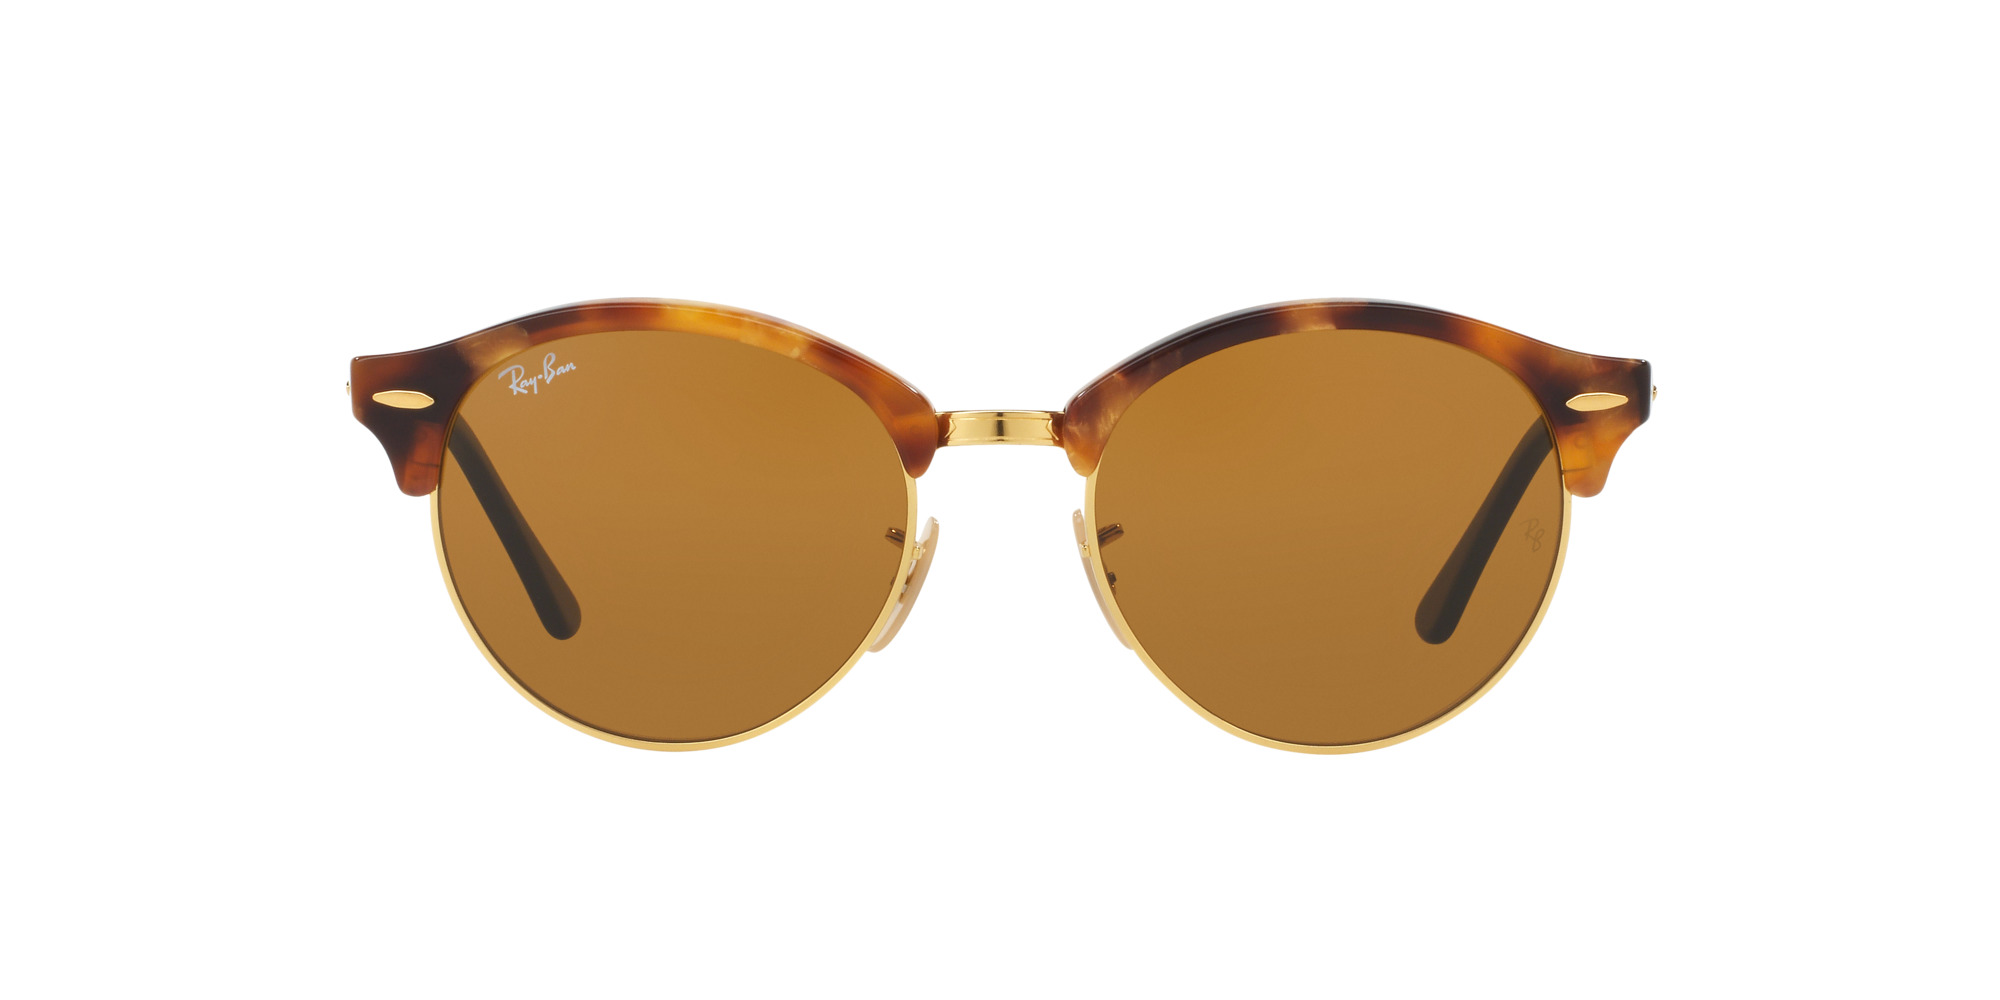 RAY-BAN CLUBROUND RB 4246 1160-360